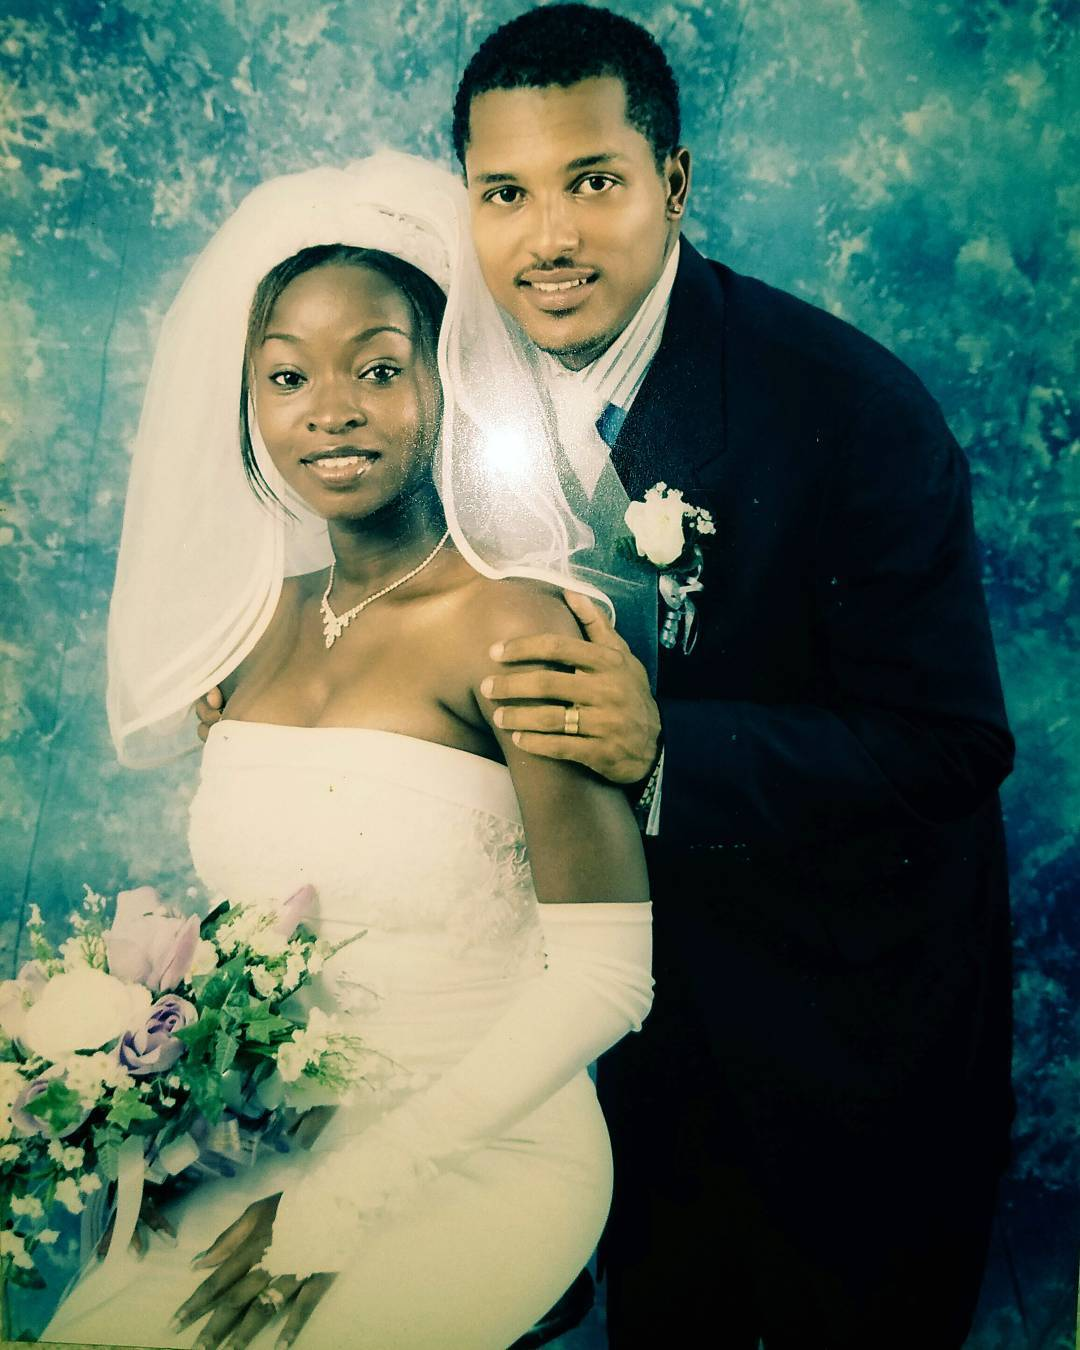 The Kristen Archives - Just Wife Stories Van vicker and his real wife pictures